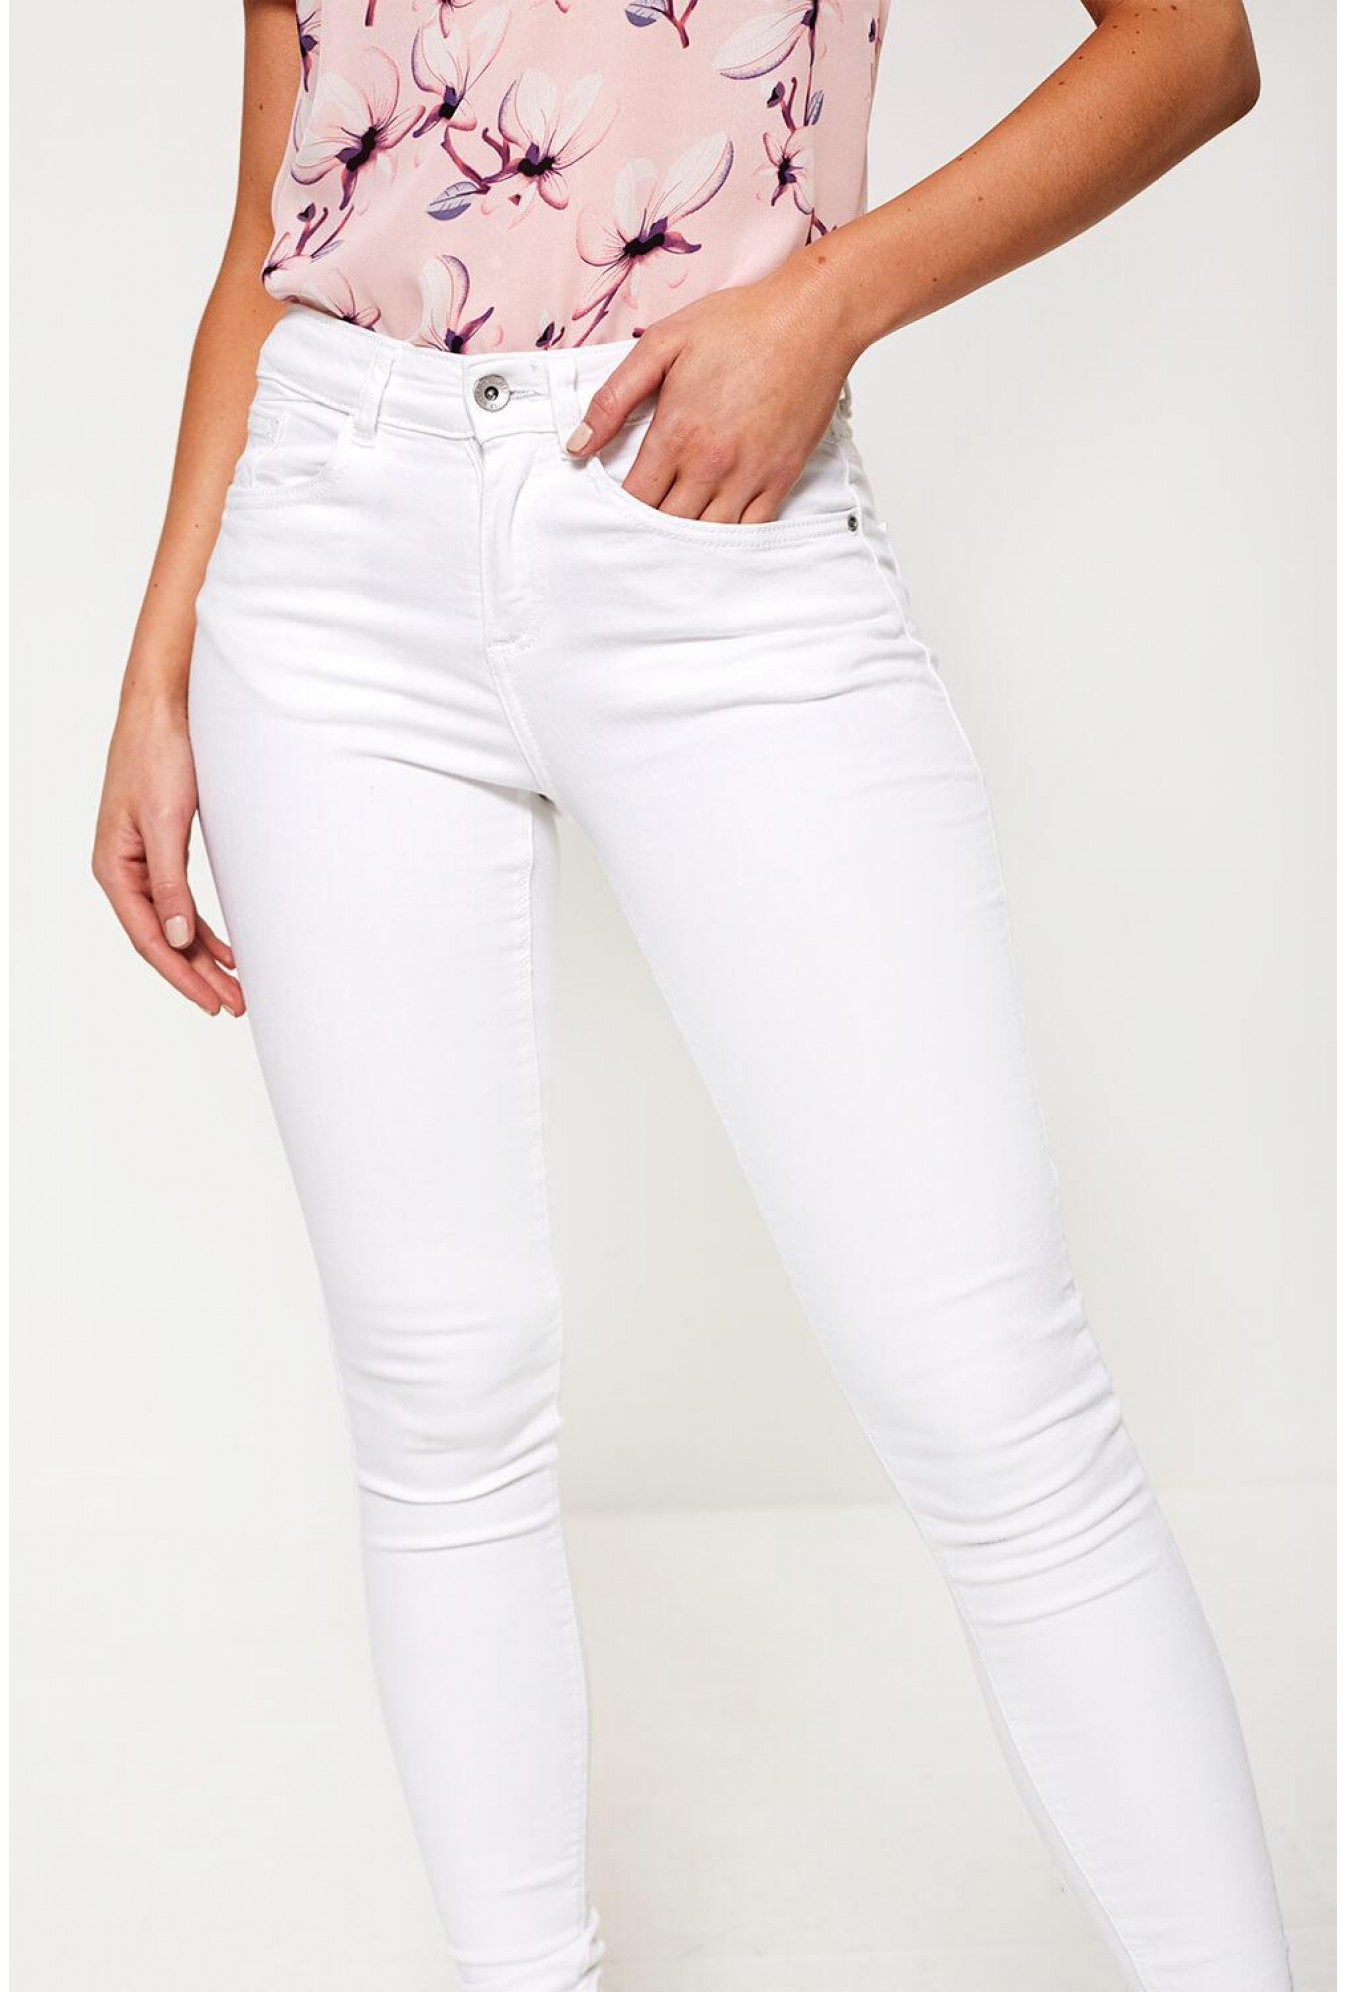 5fed25a1d B.Young Lola High Rise Skinny Jeans in White   iCLOTHING